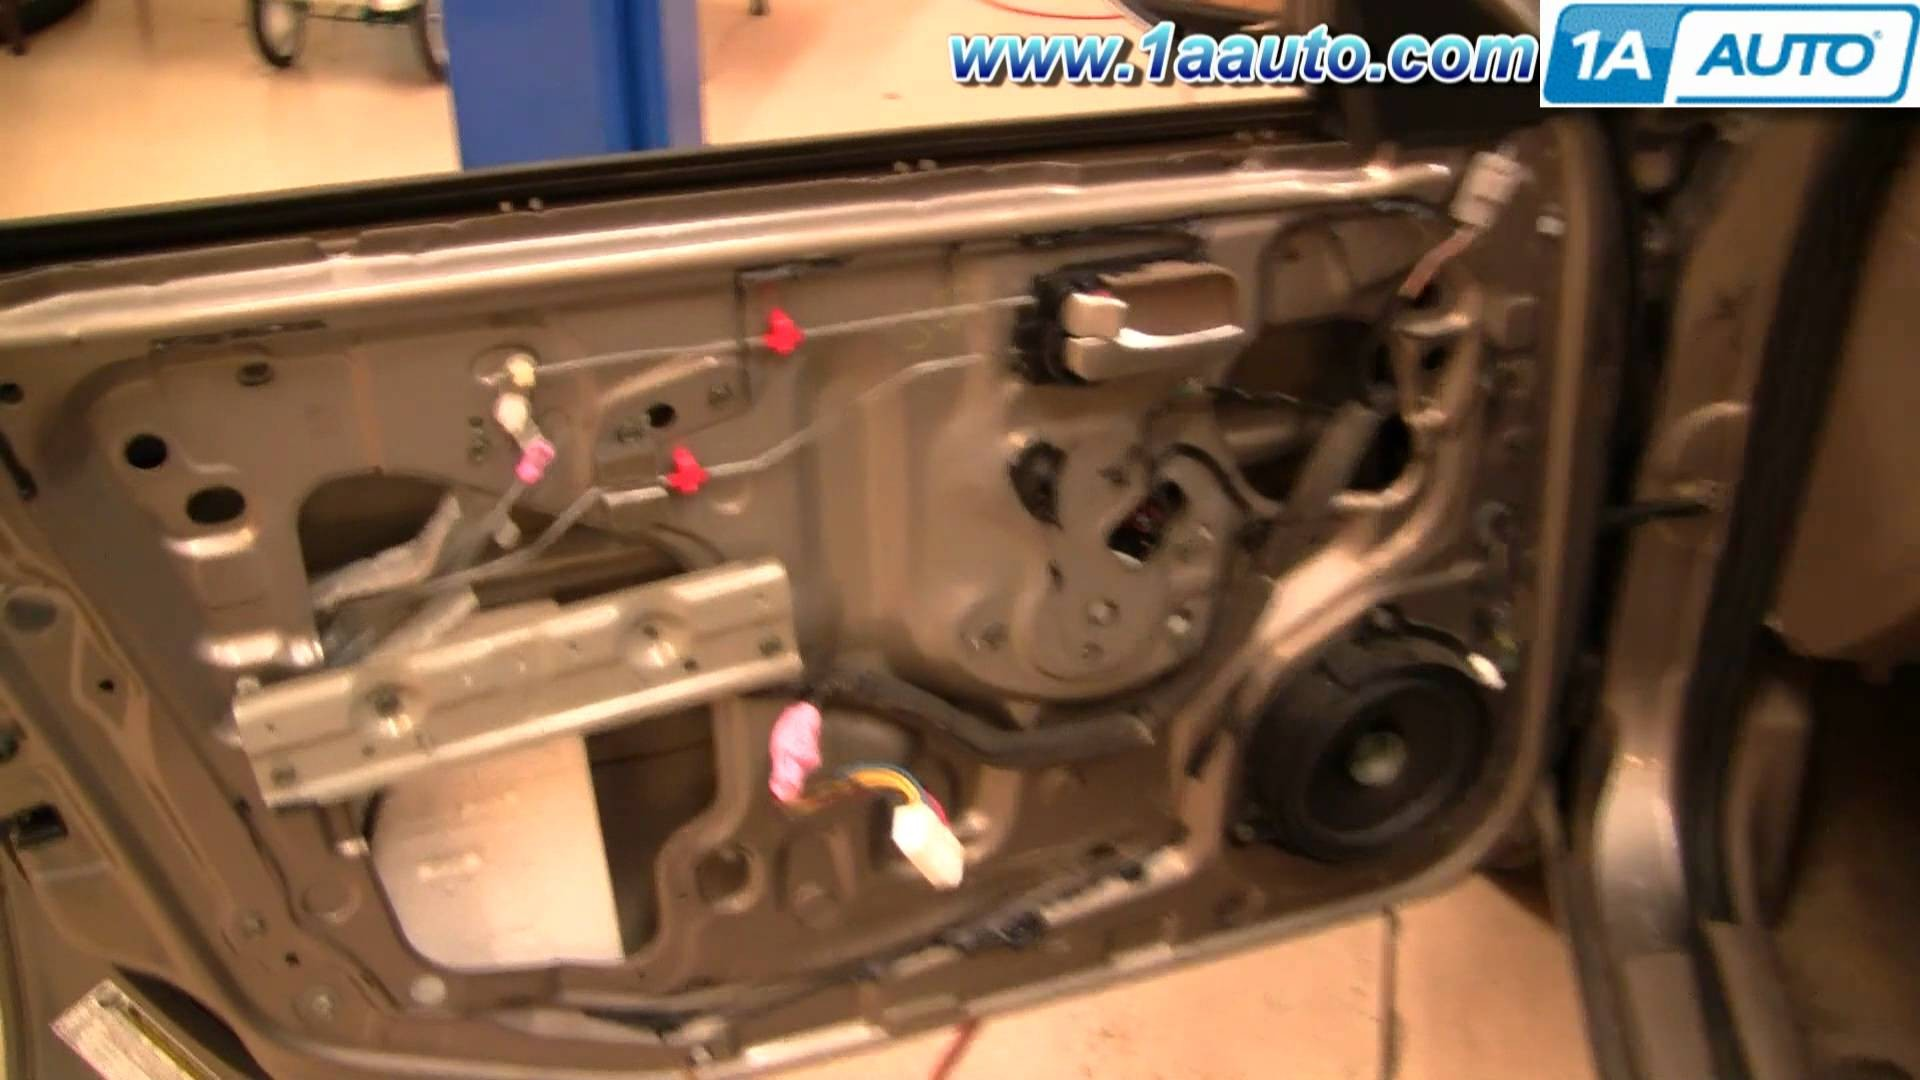 1994 Nissan Sentra Engine Diagram How to Install Replace Power Window Motor or Regulator Nissan Sentra Of 1994 Nissan Sentra Engine Diagram